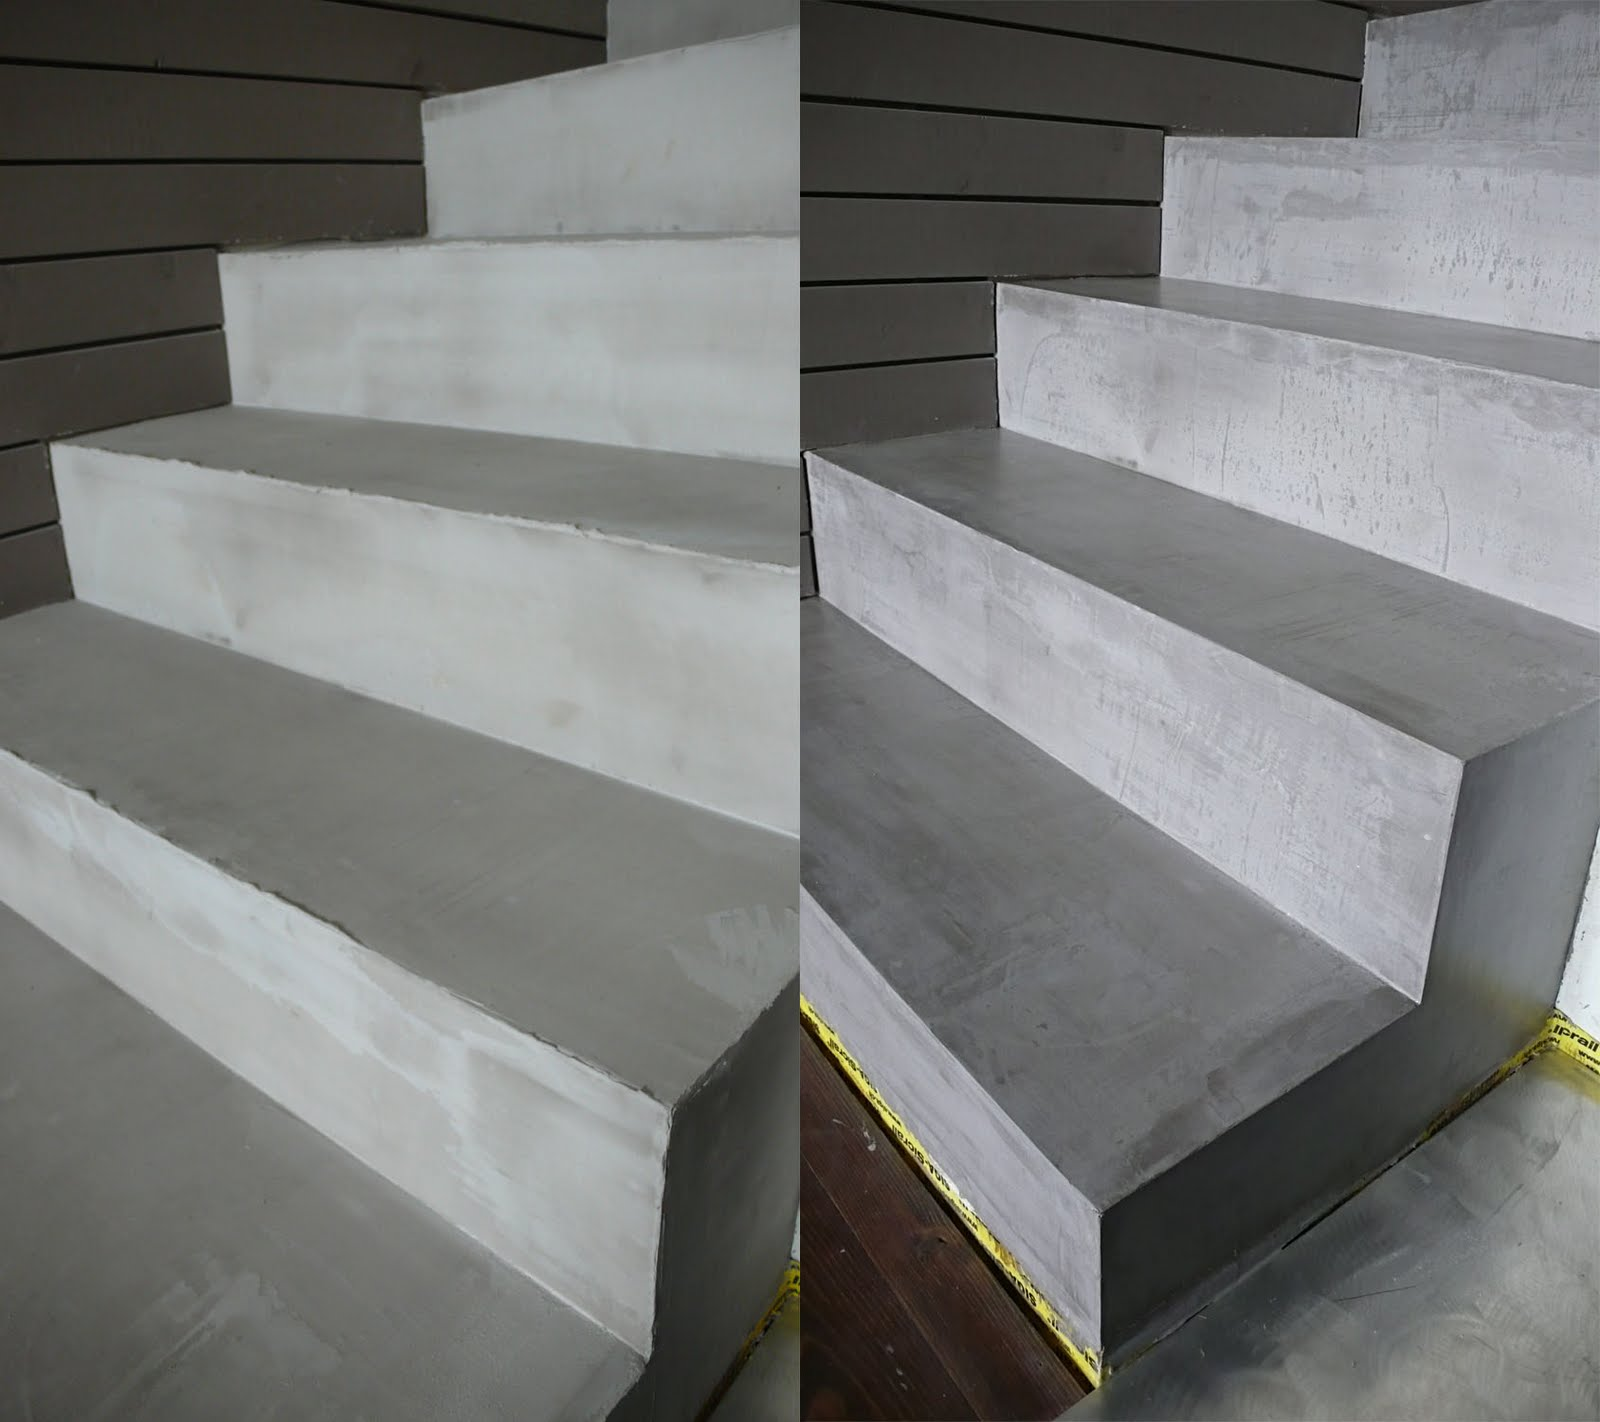 Construction escalier beton interieur 28 images for Escalier d interieur